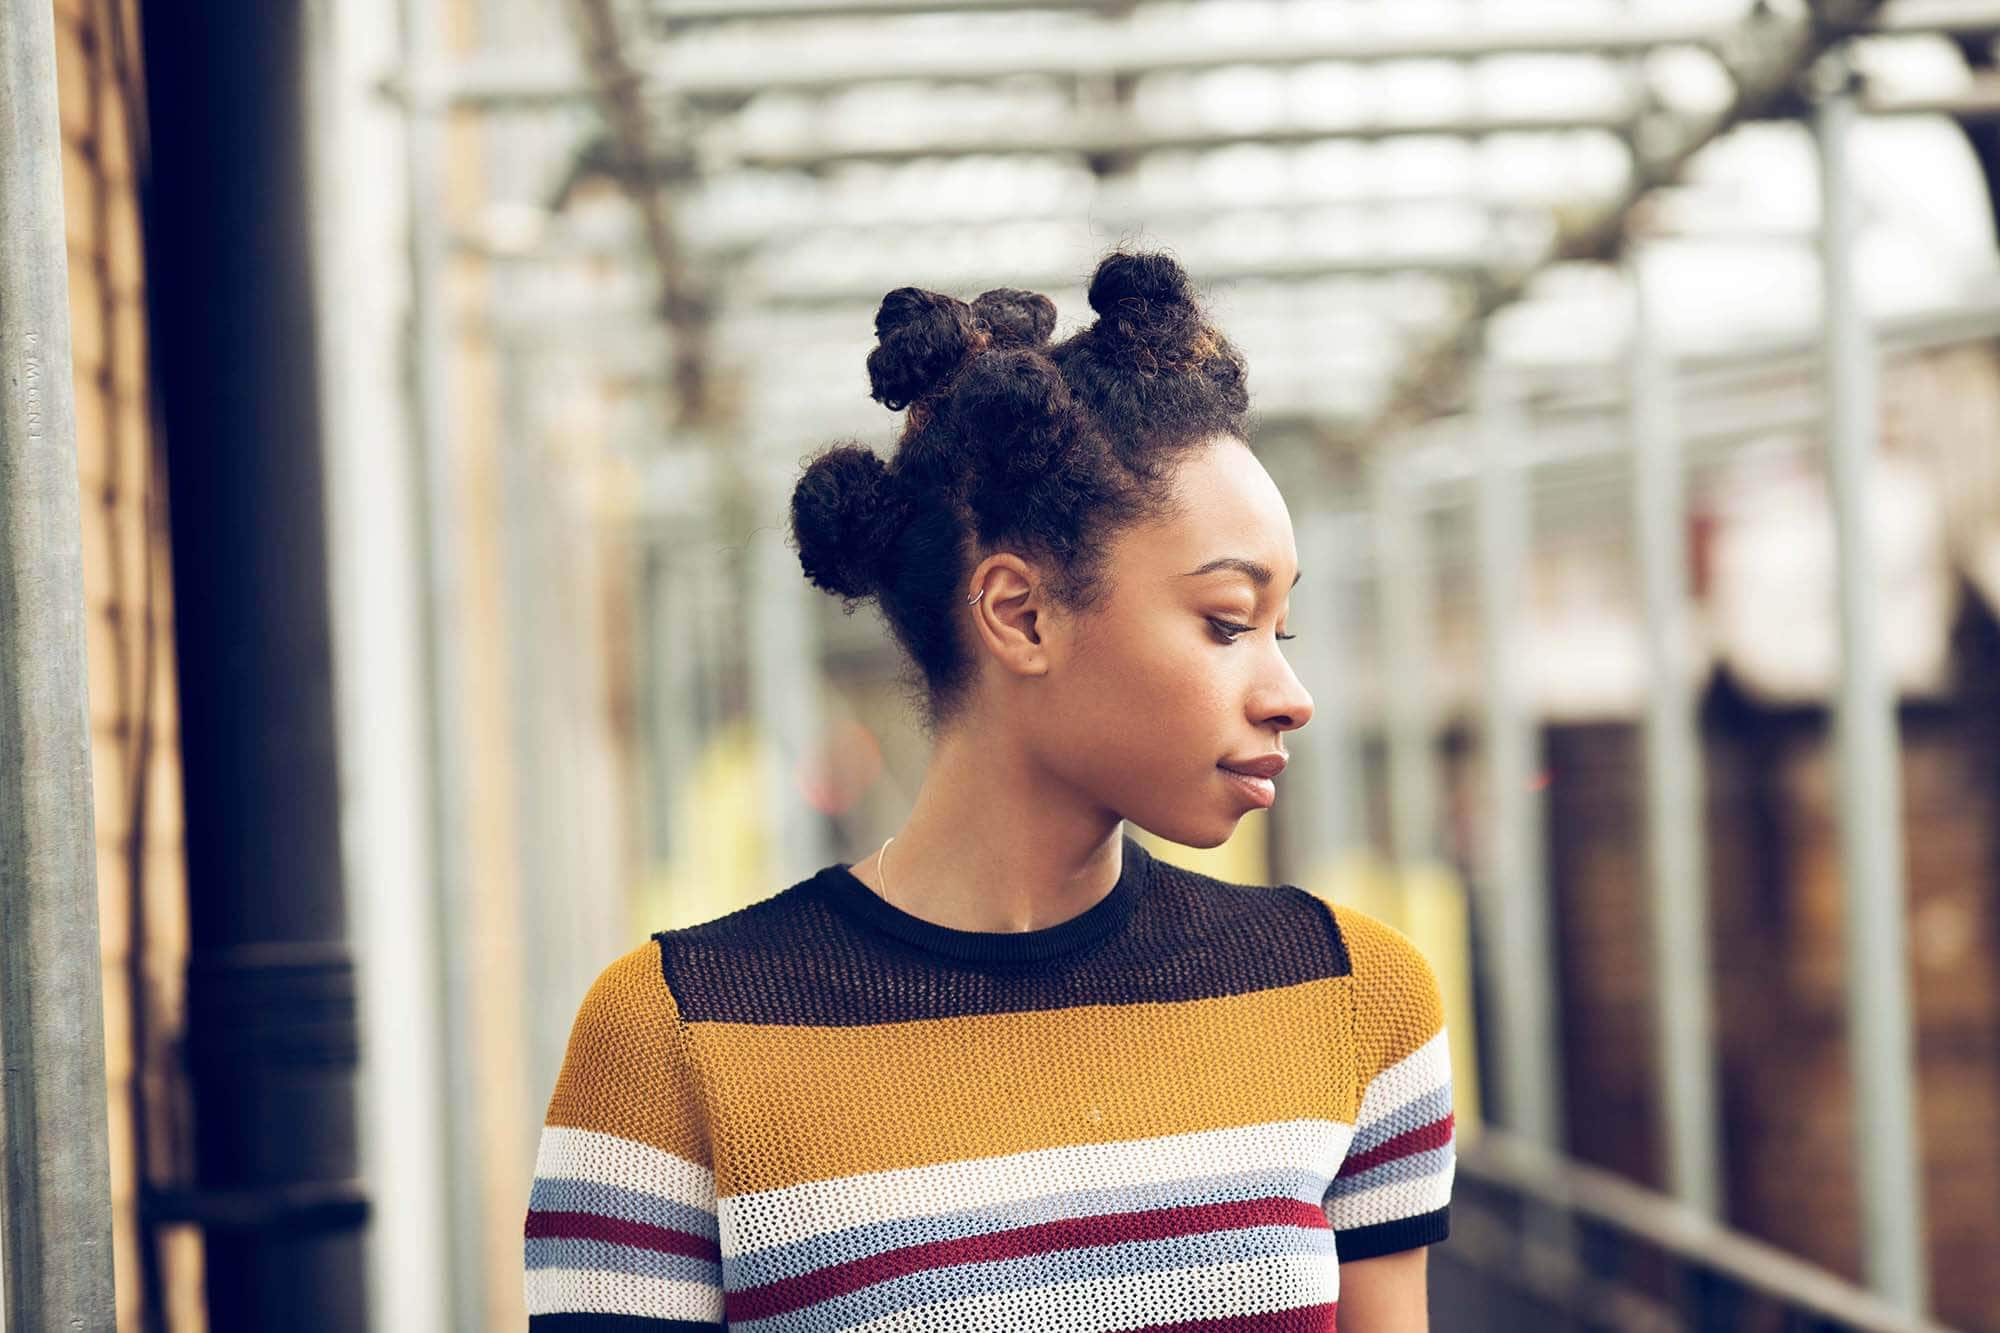 black women hairstyles: close up shot of a woman with chocolate brown natural hair styled into bantu knots, wearing a striped shirt and posing outside